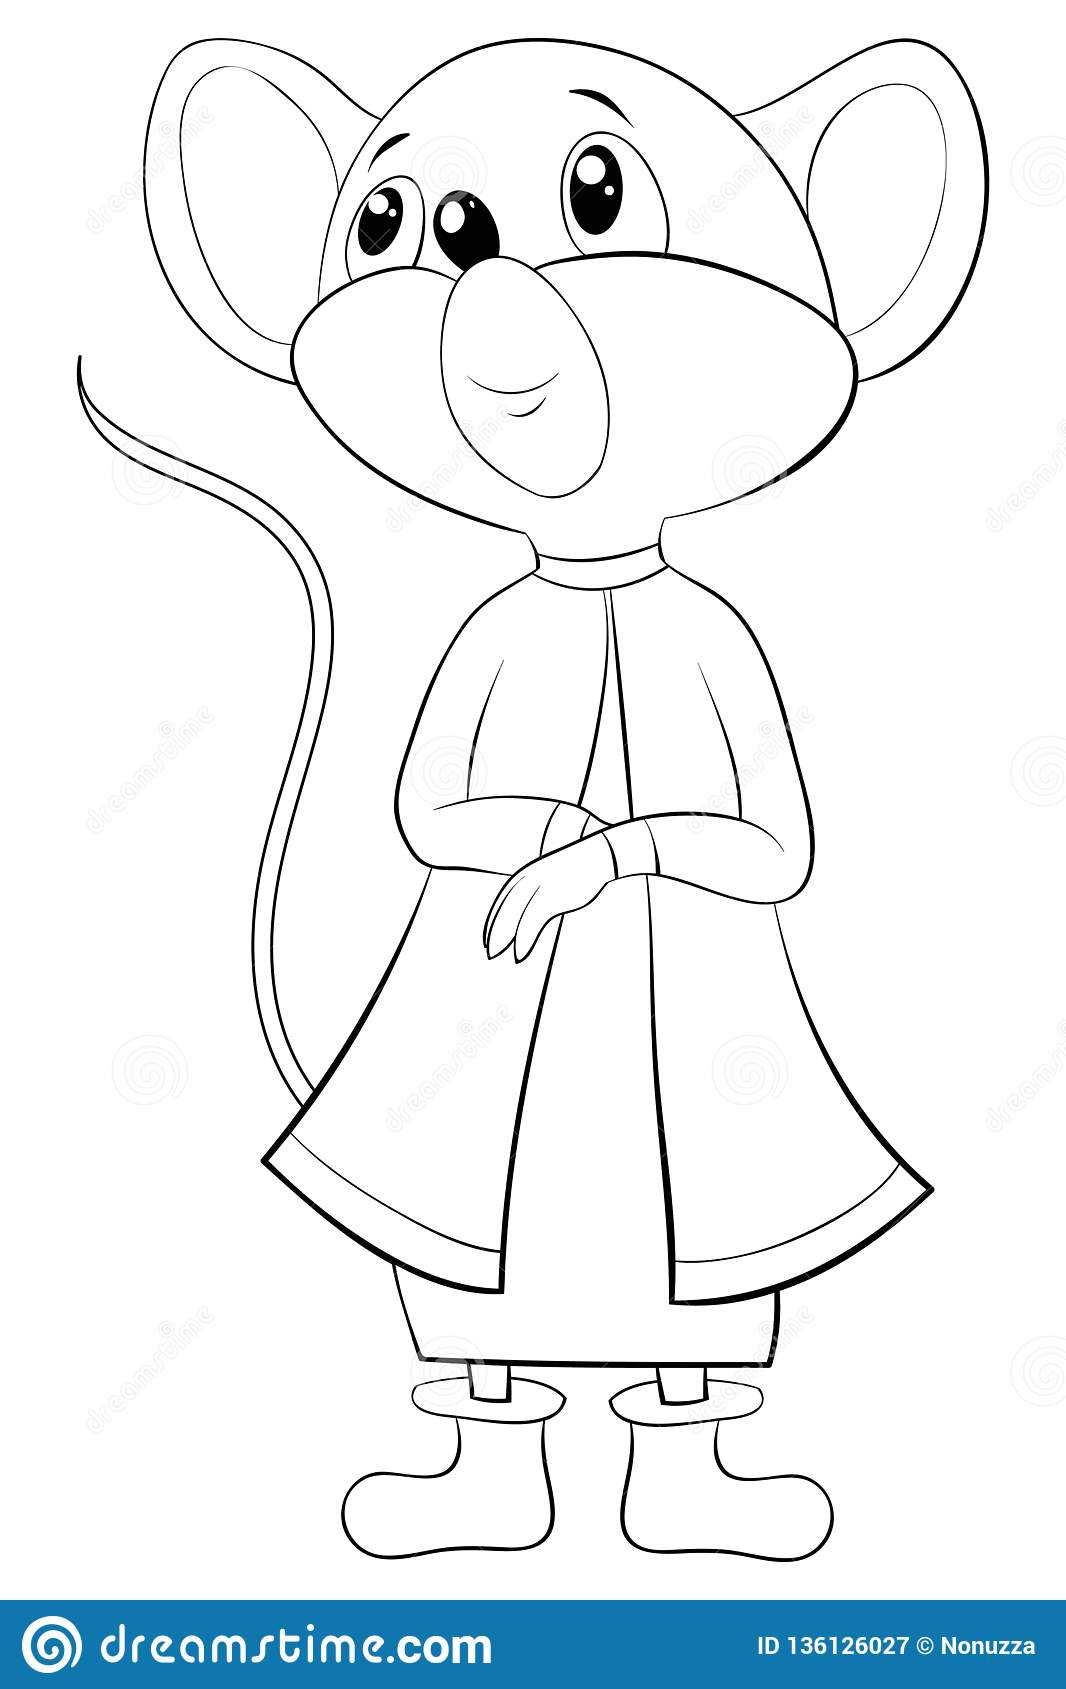 A Children Coloring Book,page A Cute Mouse Image For ...